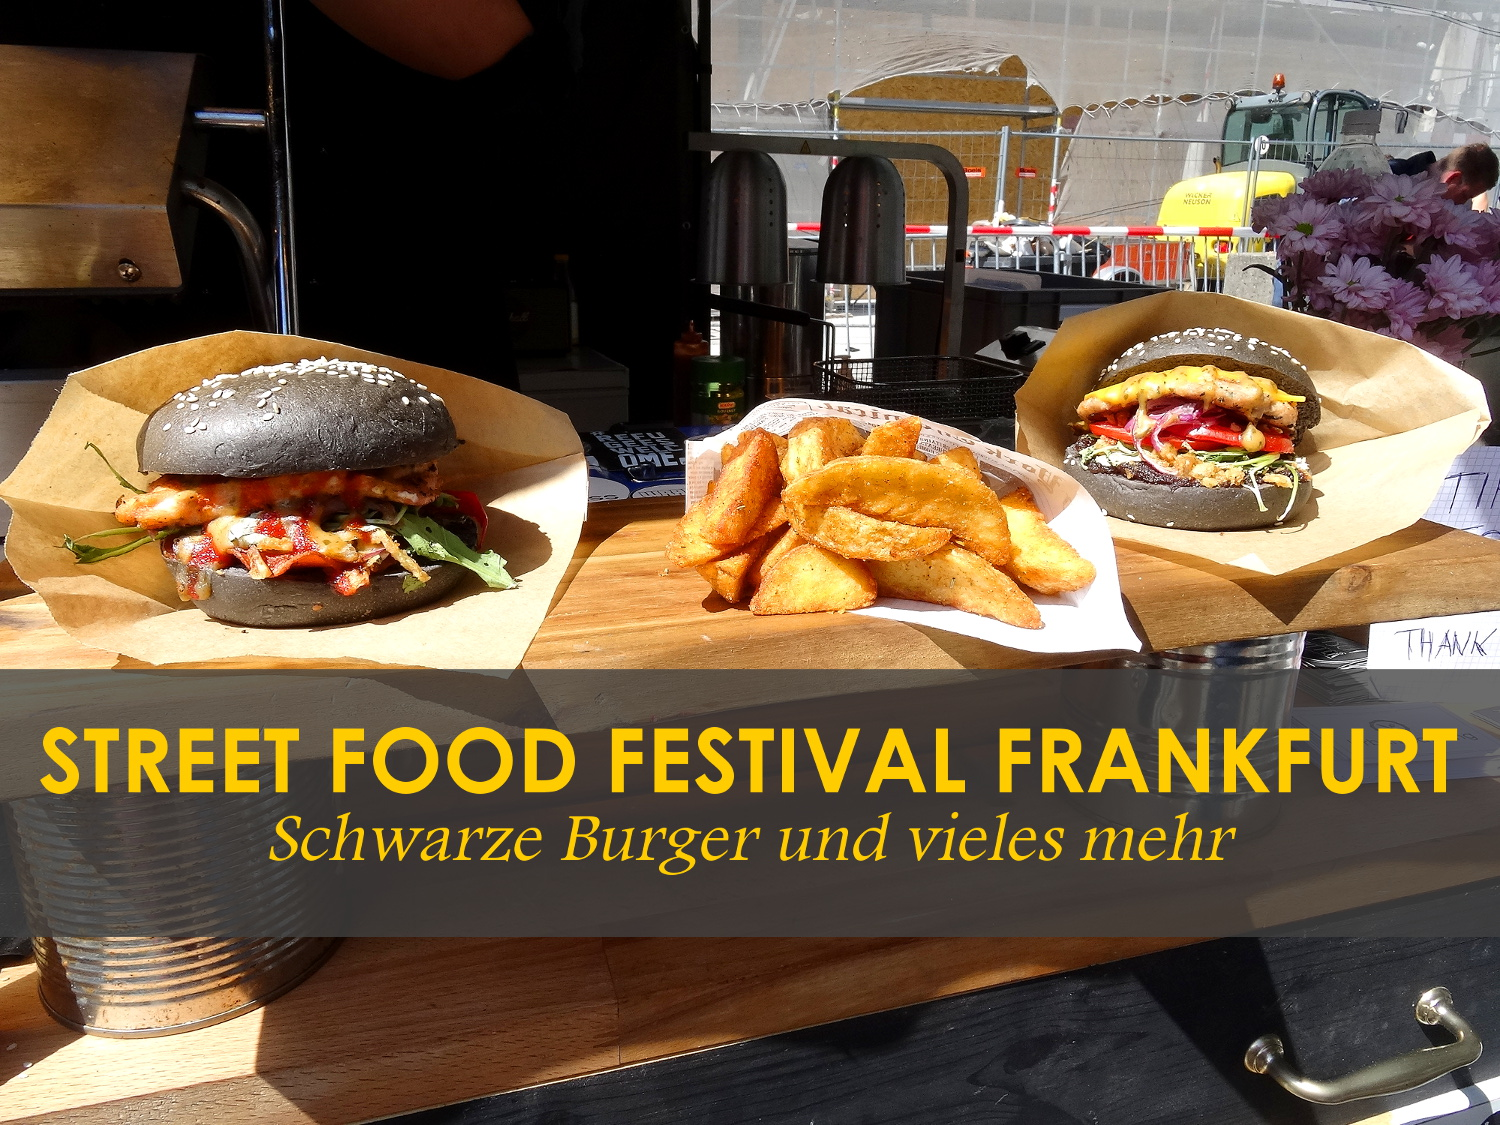 street food festival frankfurt schwarze burger und vieles mehr. Black Bedroom Furniture Sets. Home Design Ideas